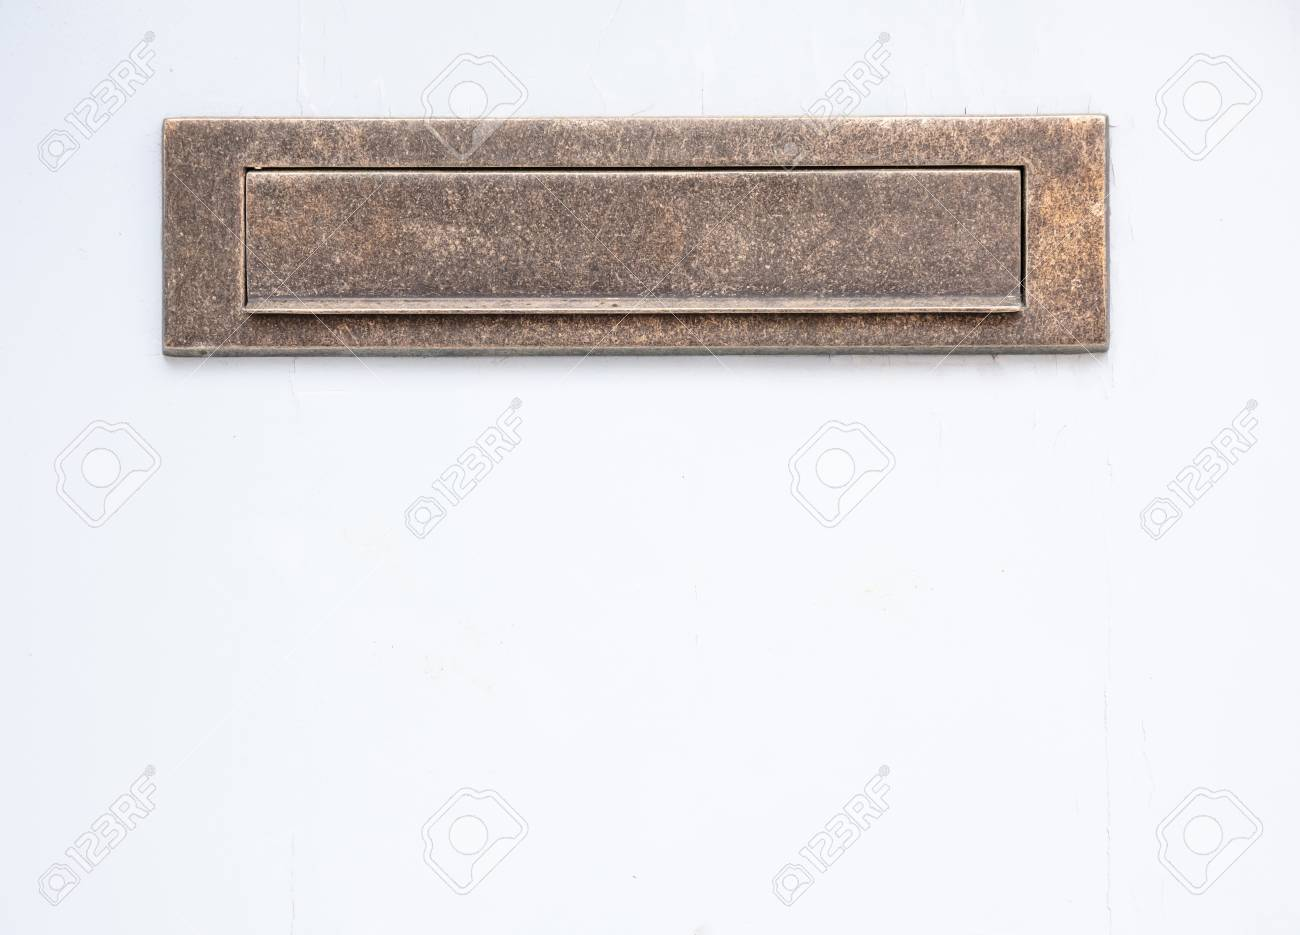 Old Bronze Mailbox Brass Vintage Mail Letter Box On White Color Stock Photo Picture And Royalty Free Image Image 117566419